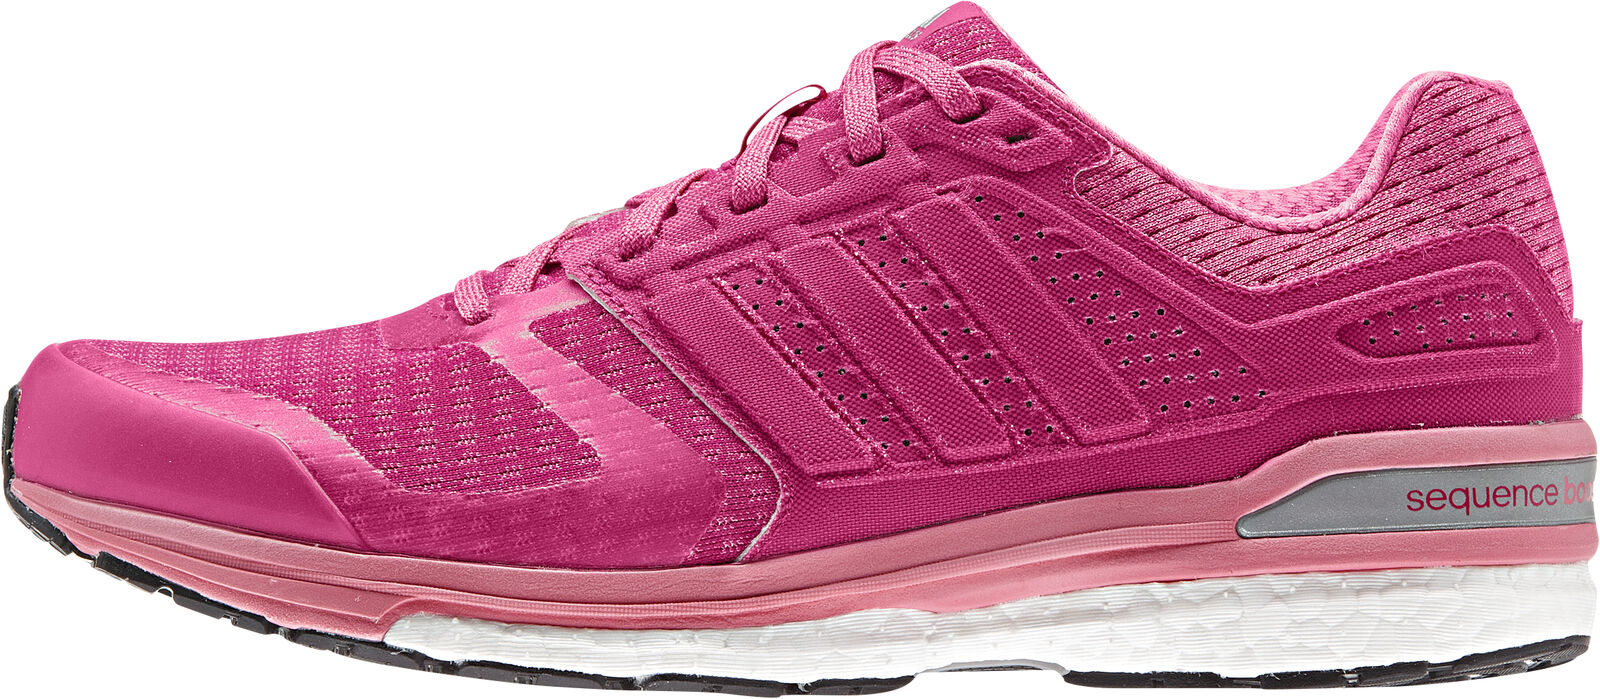 Adidas Supernova Sequence Boost 8 Running shoes - Pink